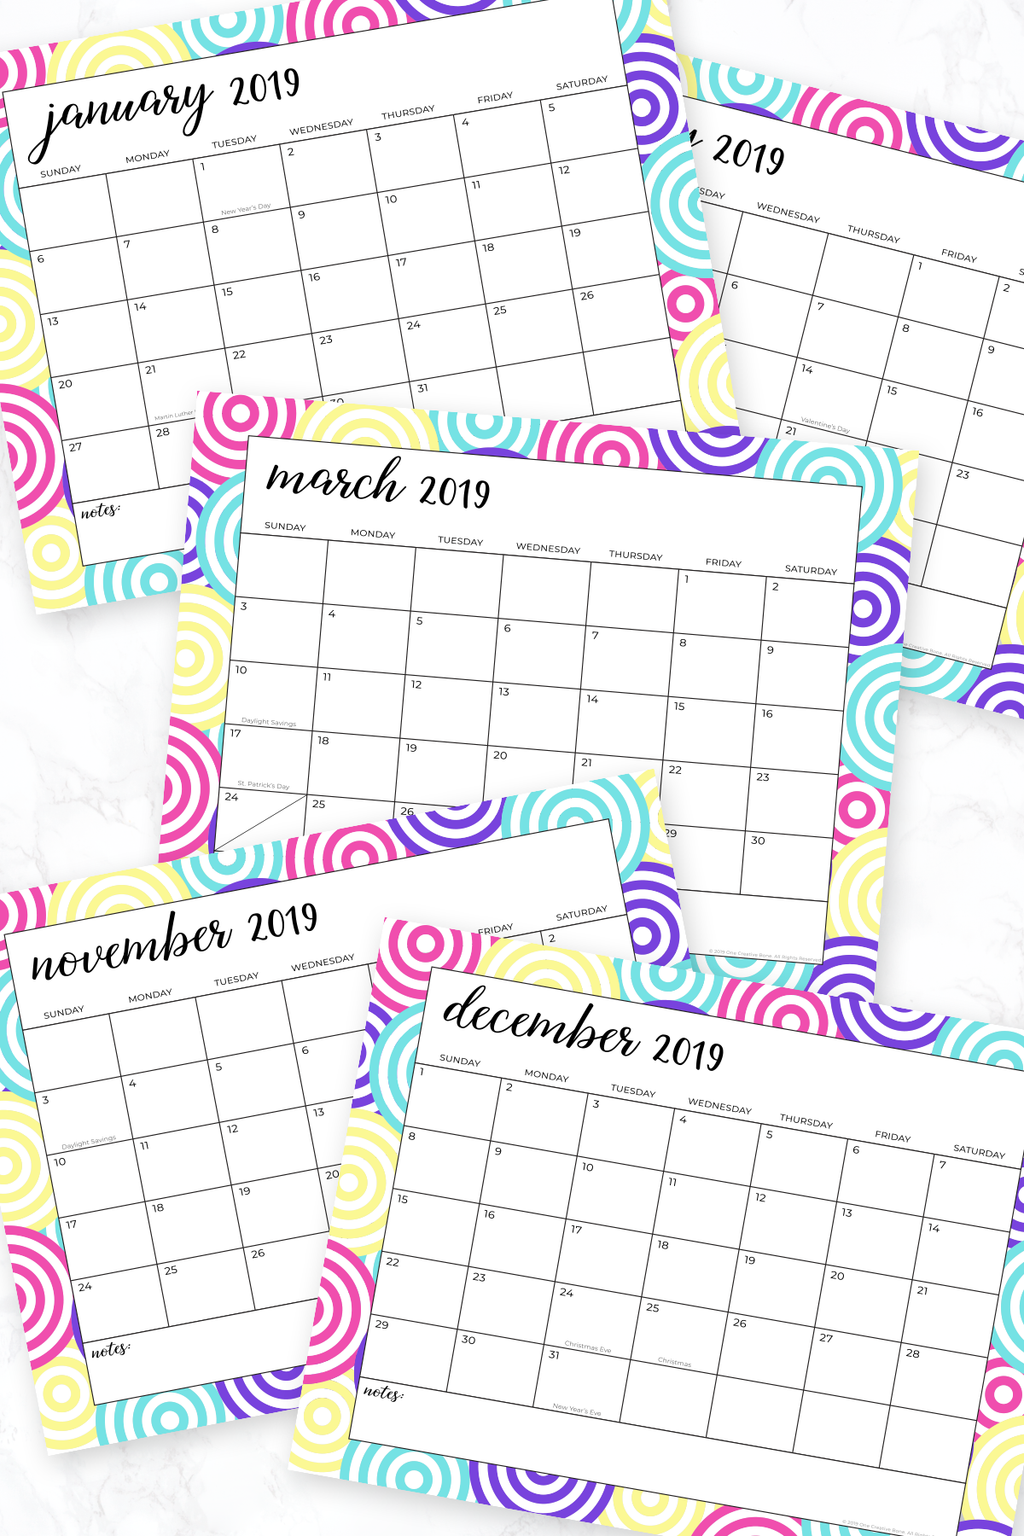 printed calendars with color circles in border